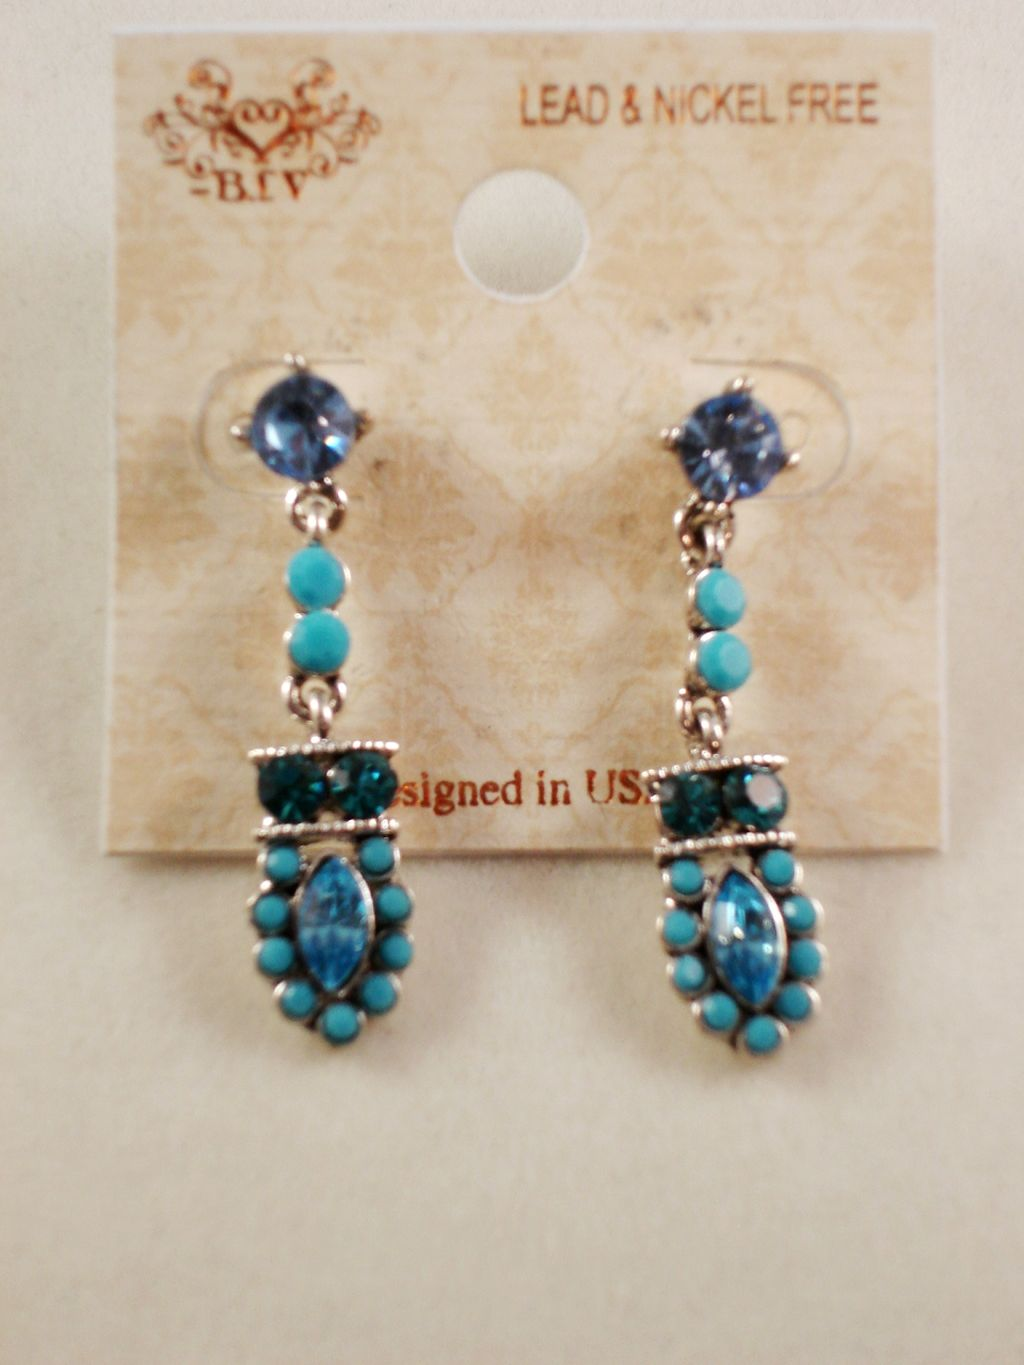 Turquoise Tone Dangling Post Earrings, CZ Cubic Zirconia Stones, Anti-allergic Jewelry